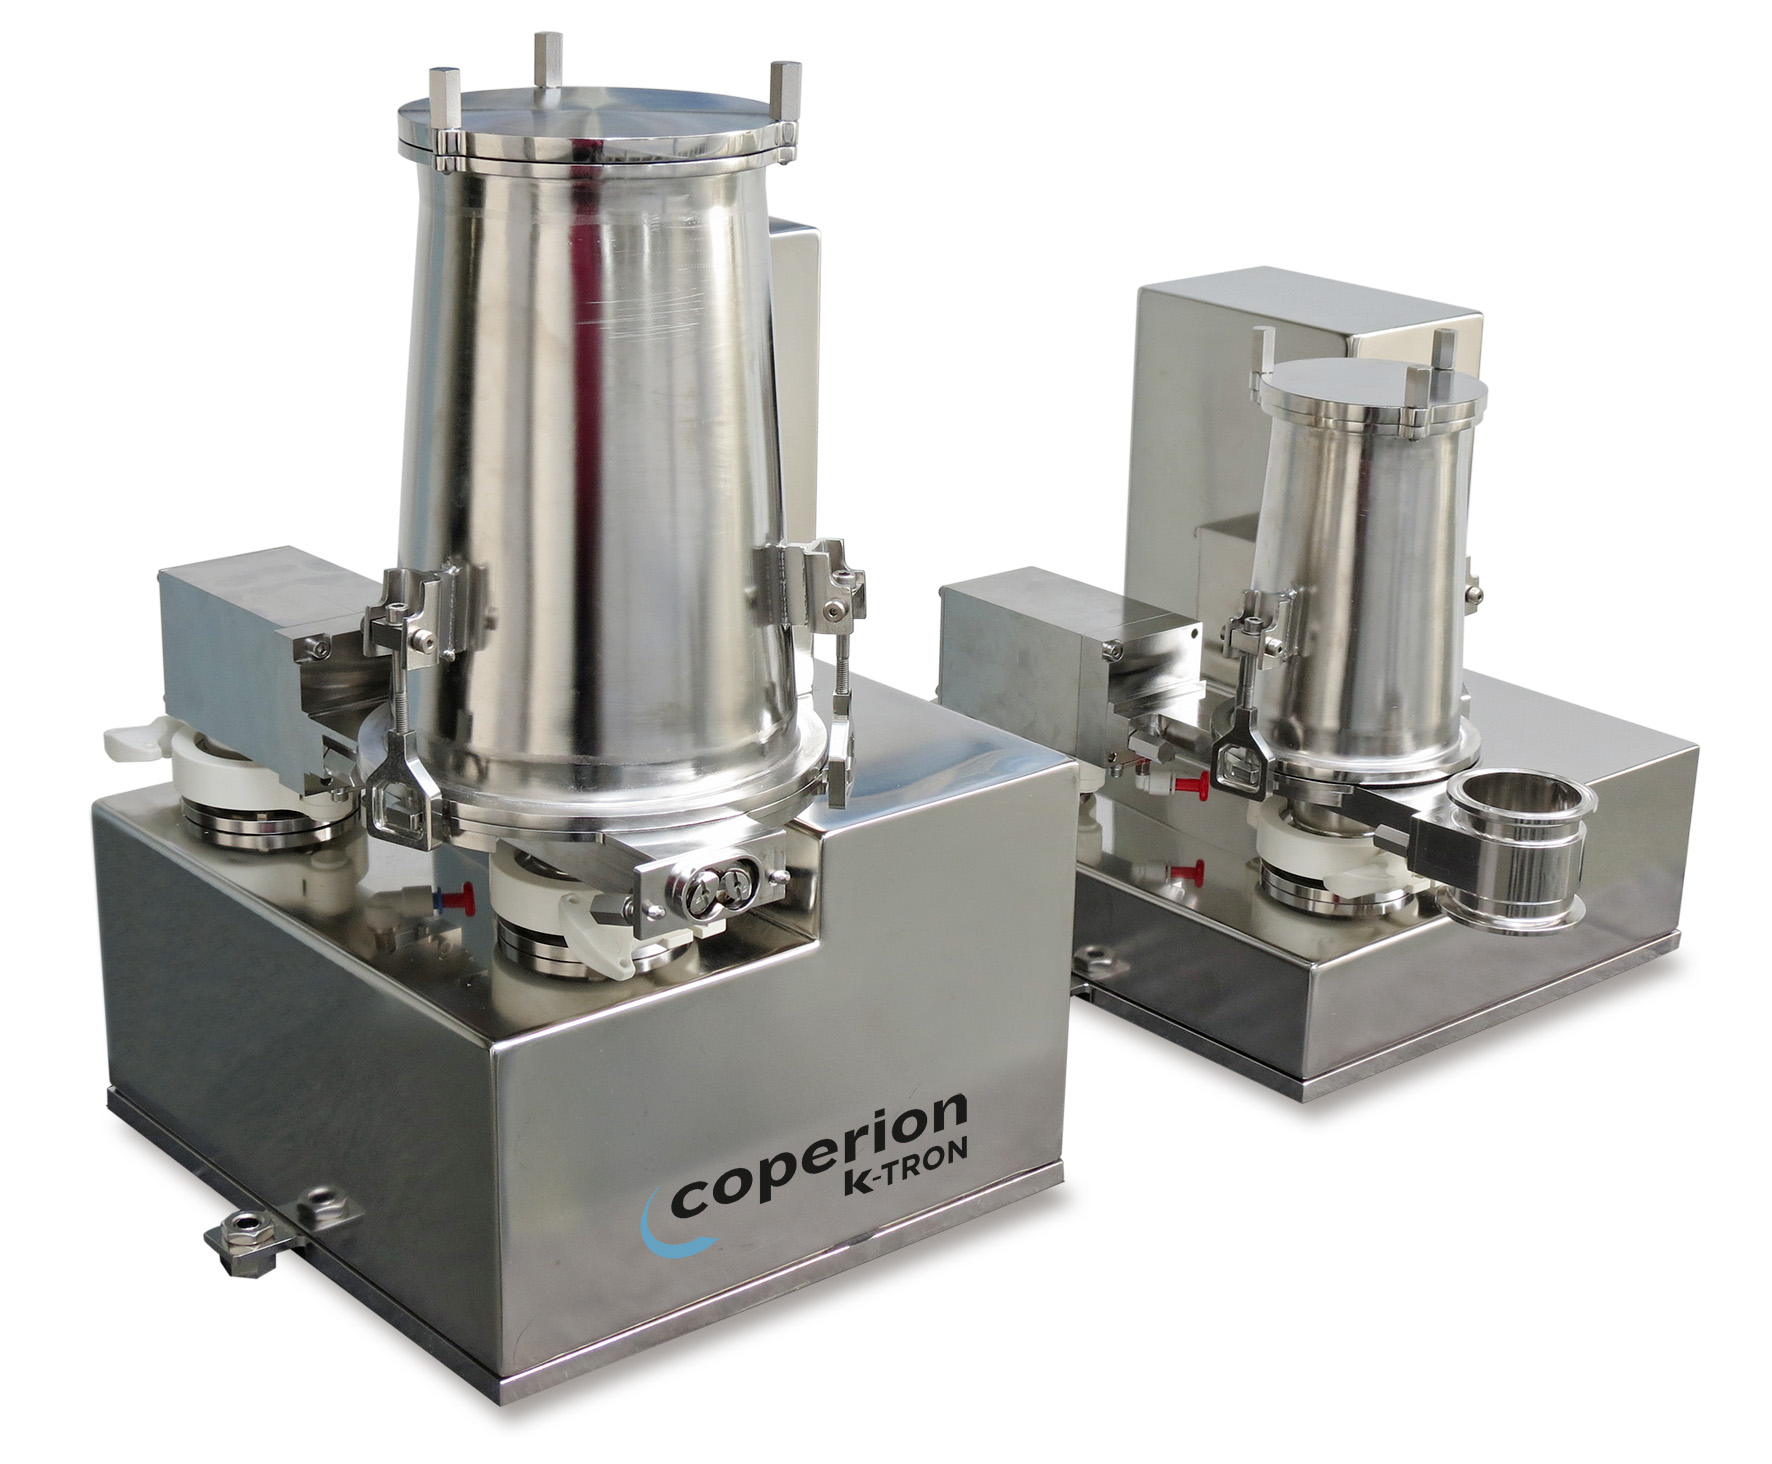 Coperion K-Tron to Exhibit at K 2013 in Duesseldorf, Germany